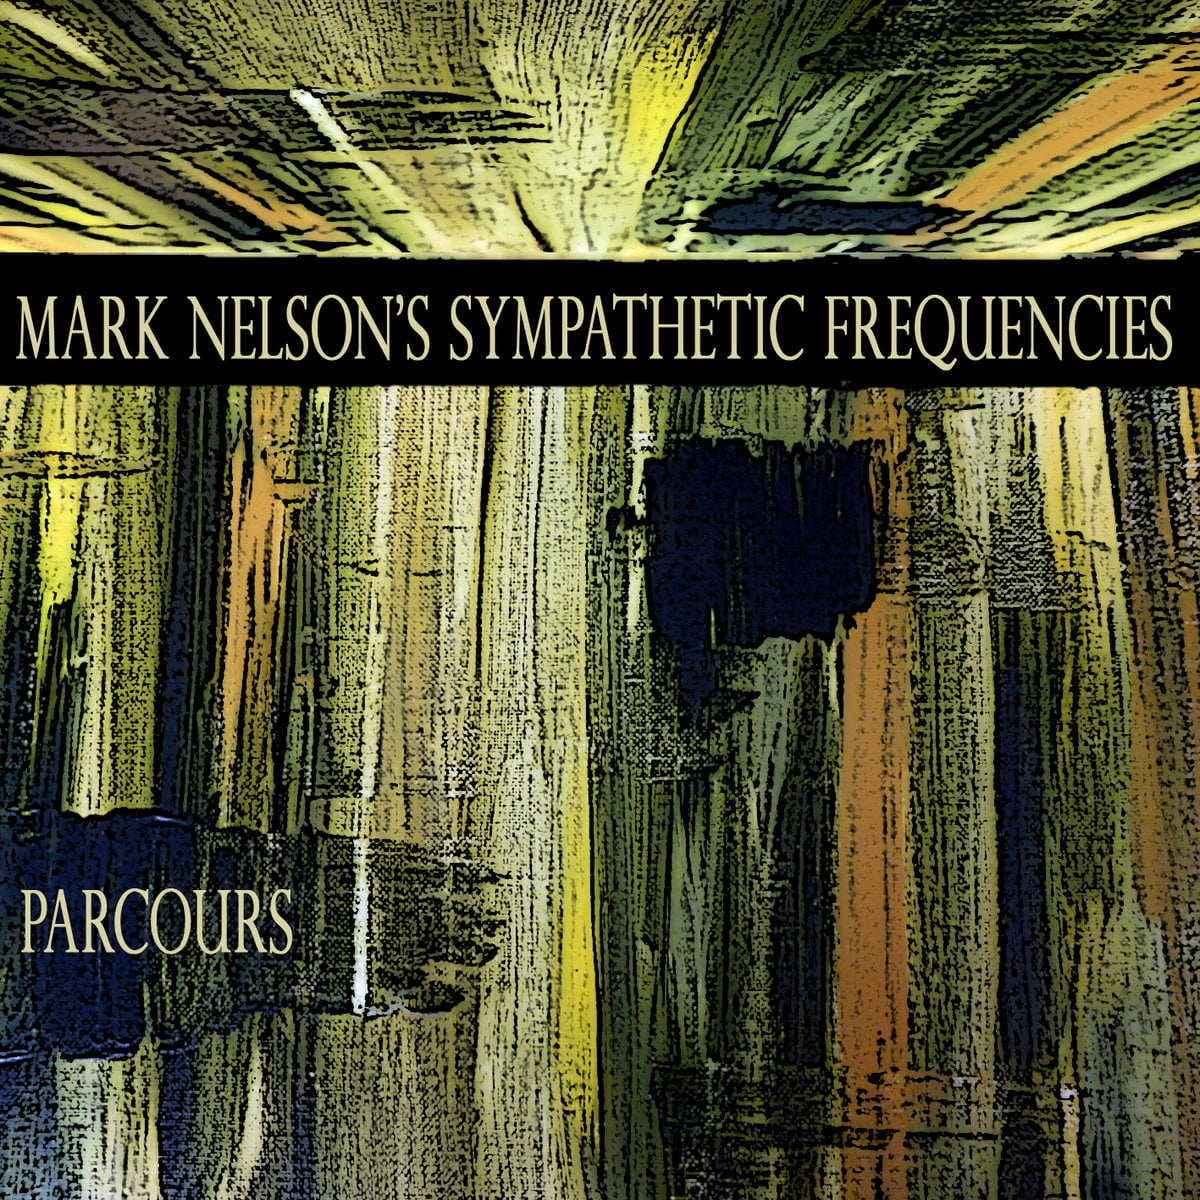 Mark Nelson's Sympathetic Frequencies